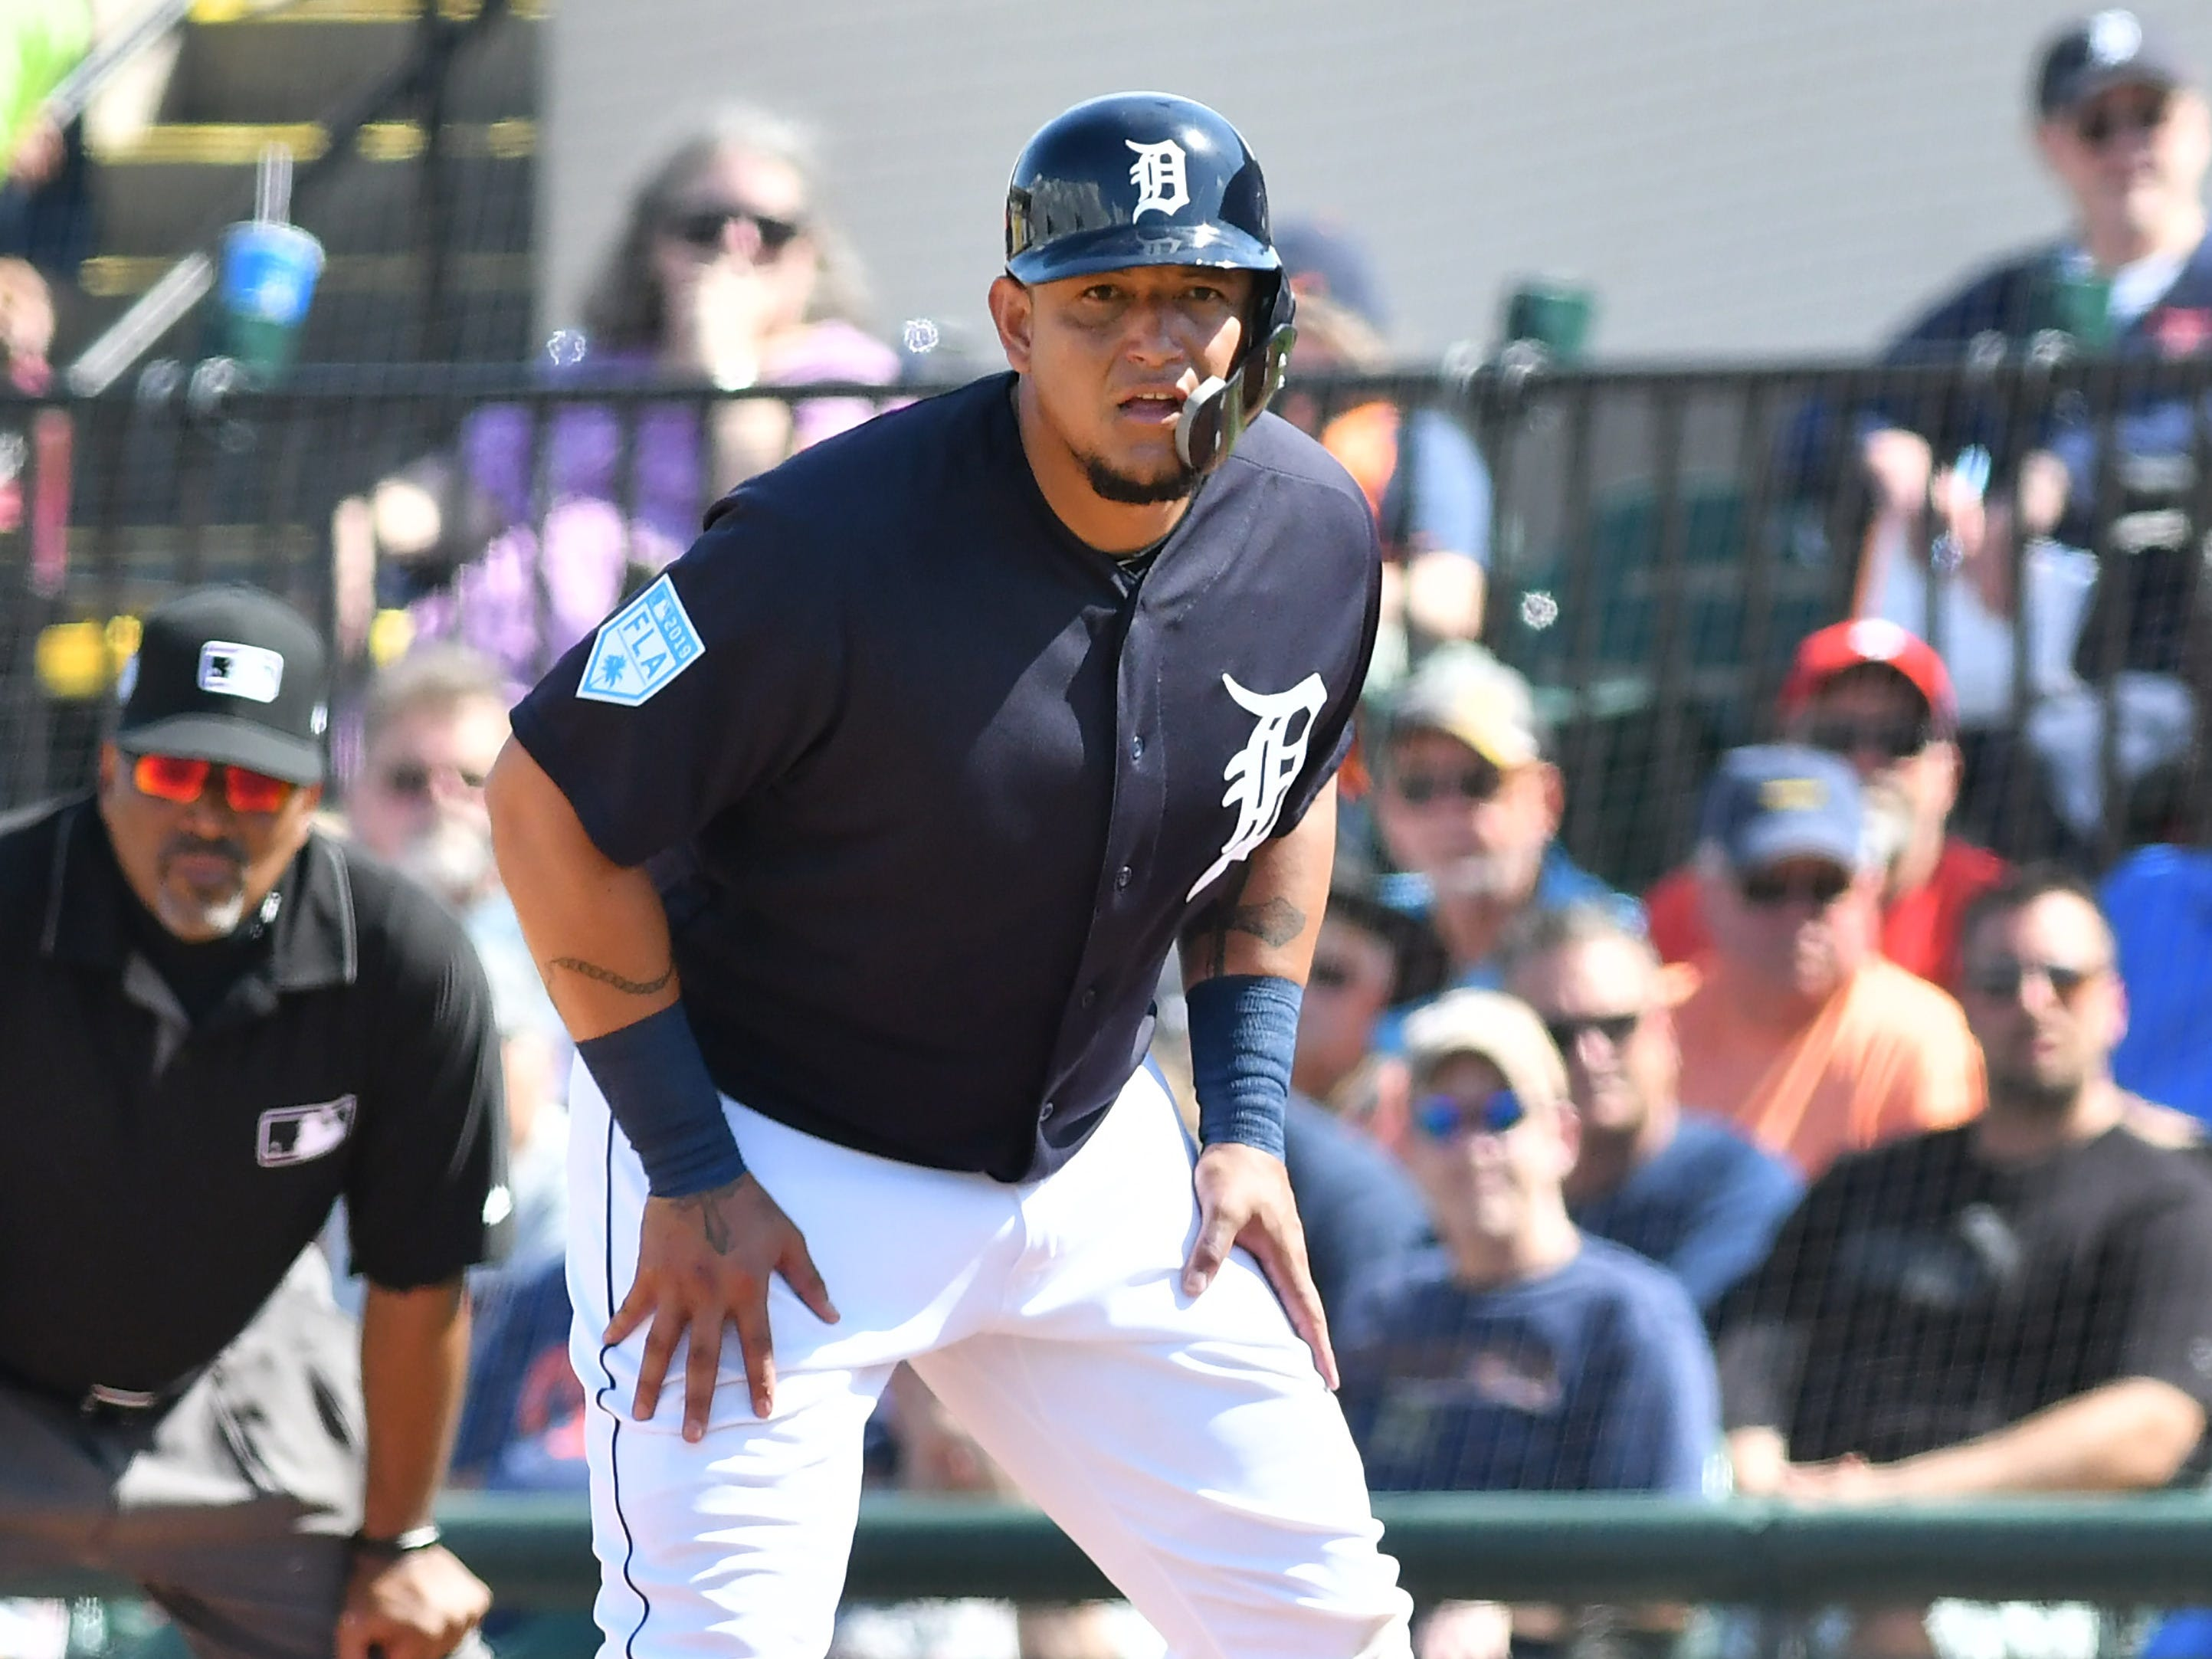 Tigers' Miguel Cabrera on first after he walks in the second inning.